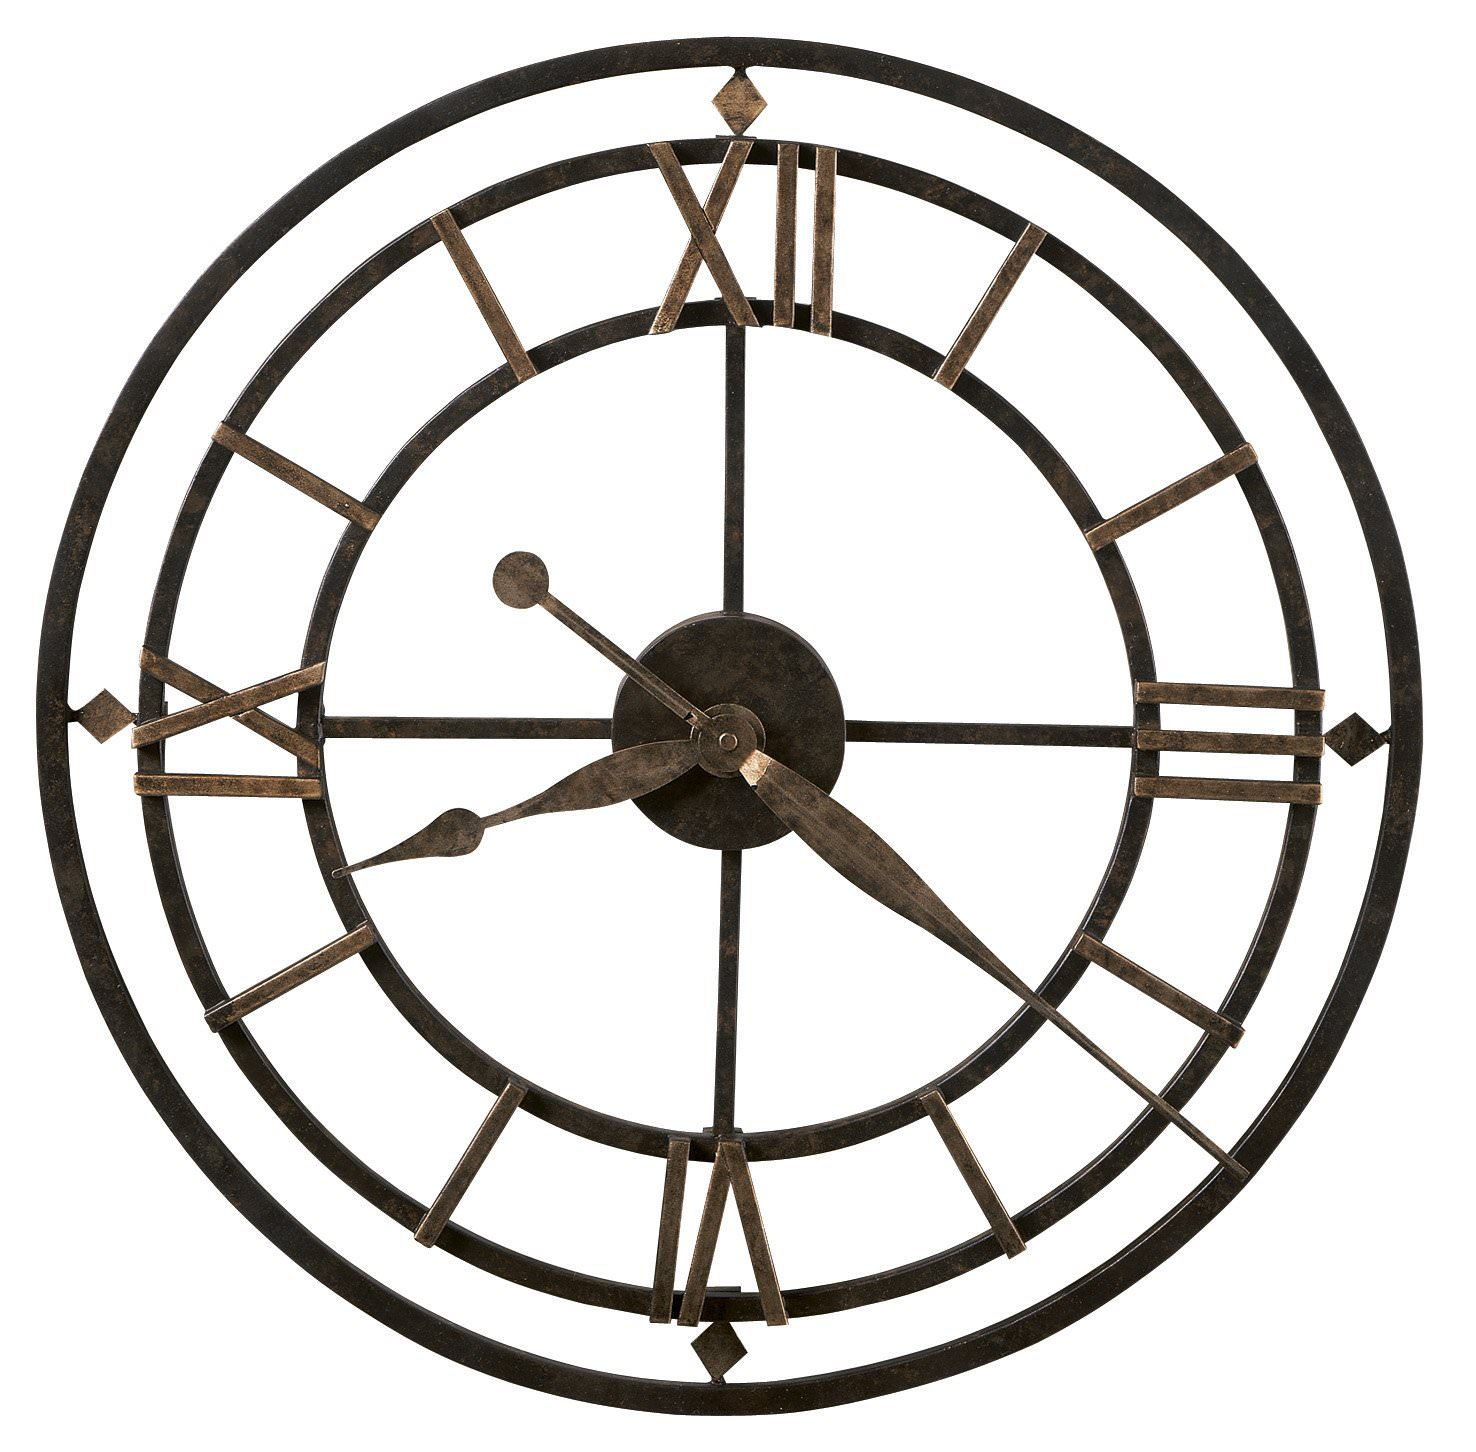 sopisticate industrial wall clock